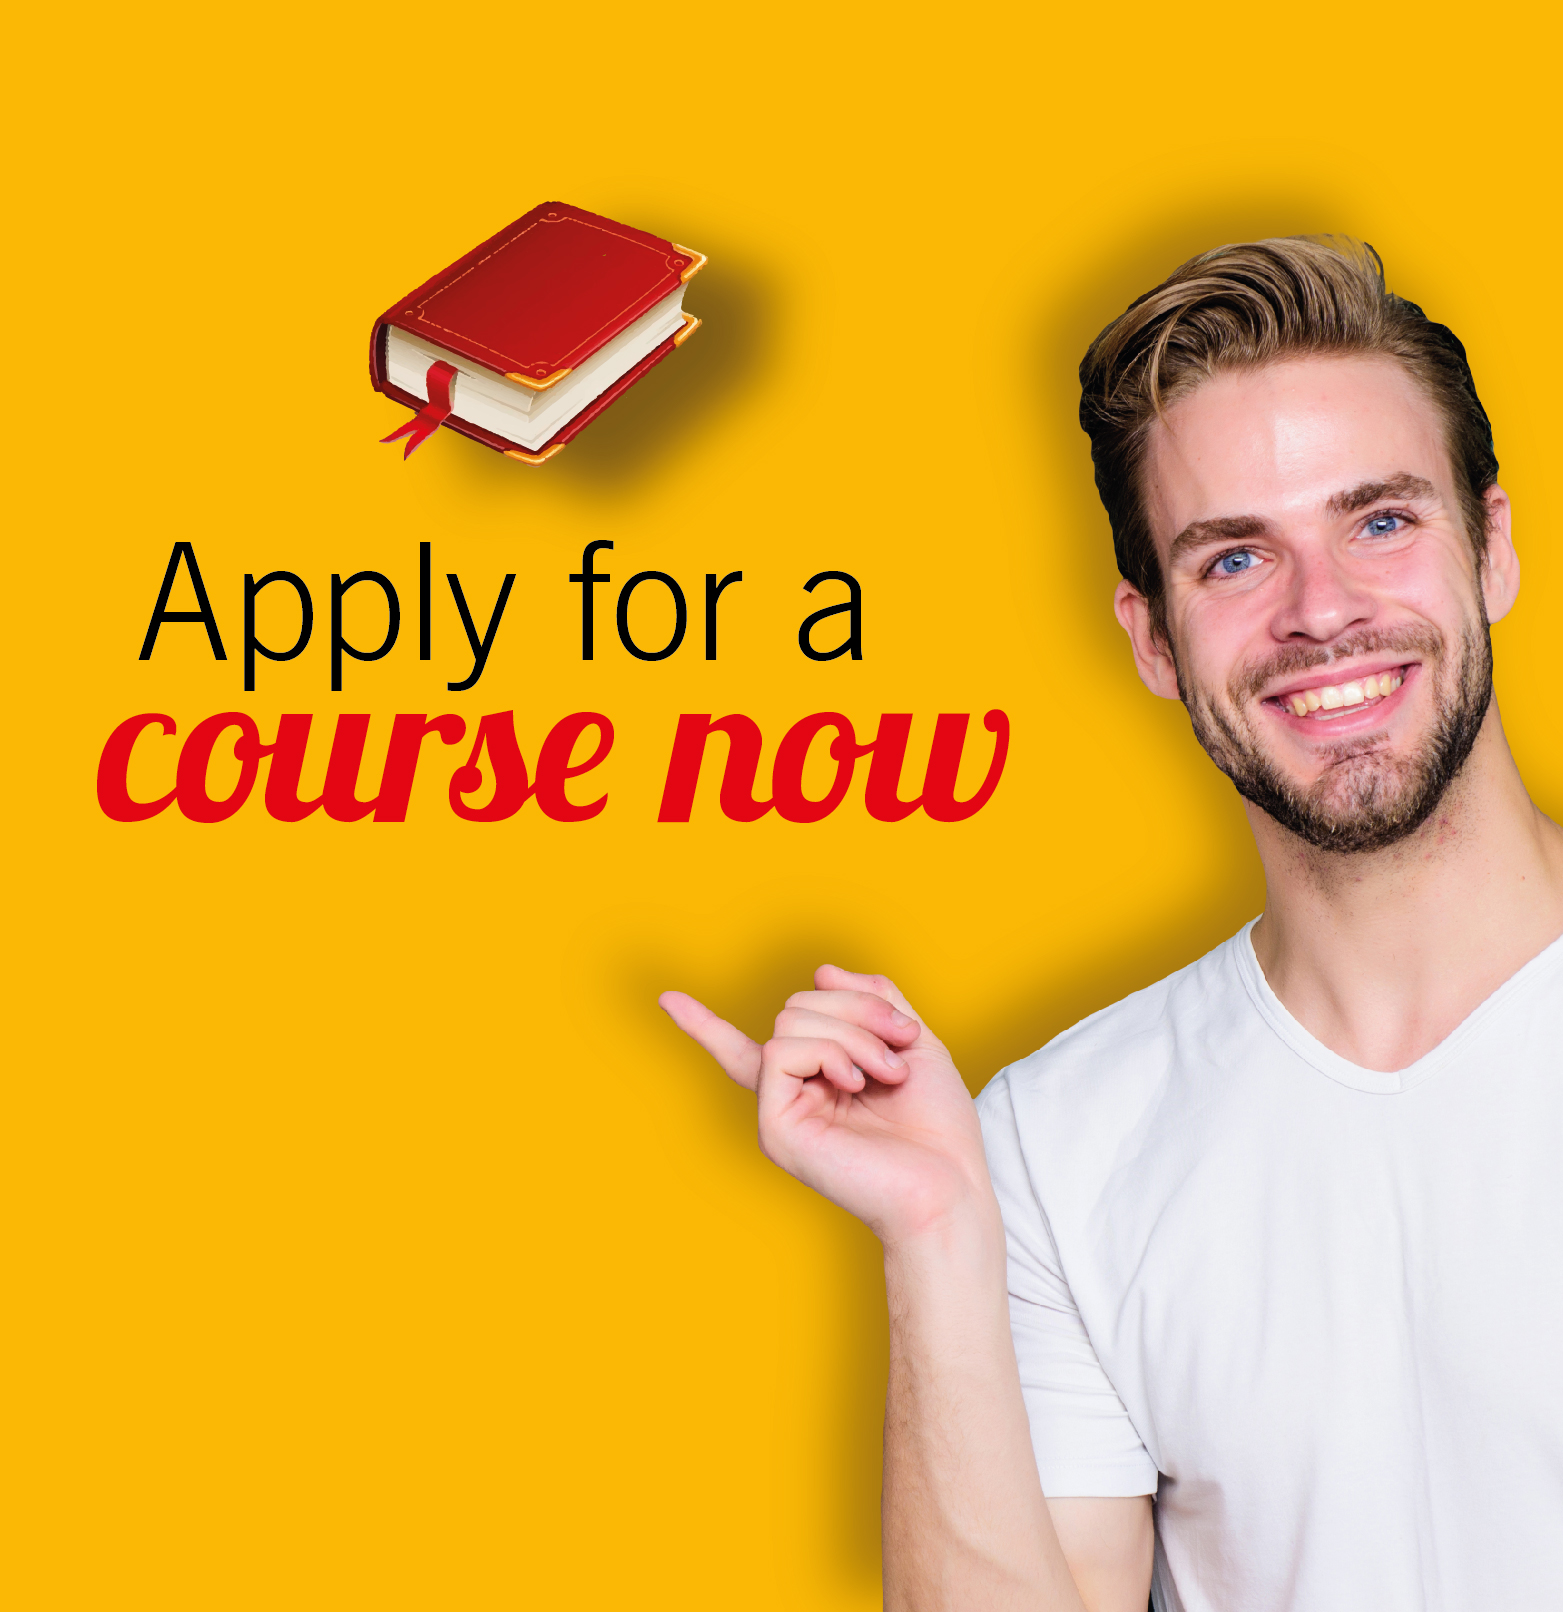 Apply for a course now